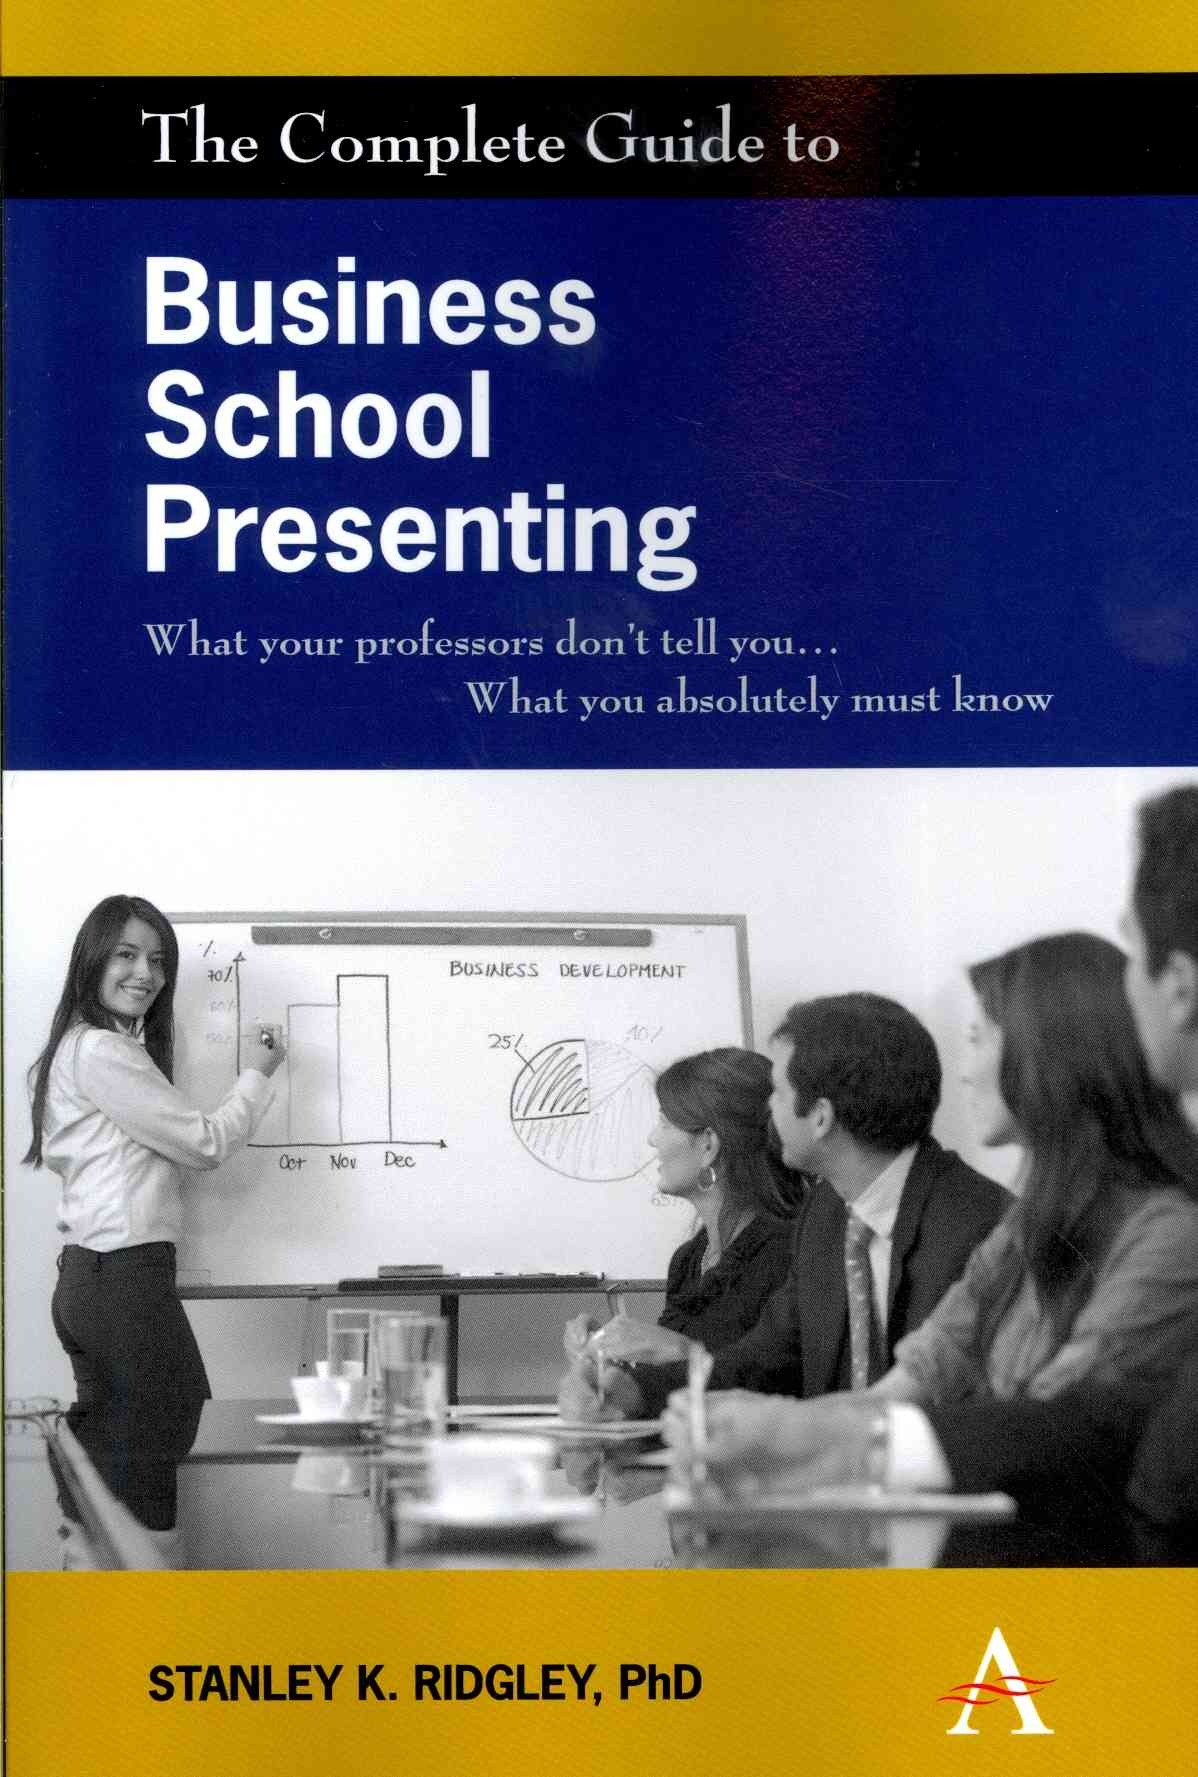 The Complete Guide to Business School Presenting By Ridgley, Stanley K.